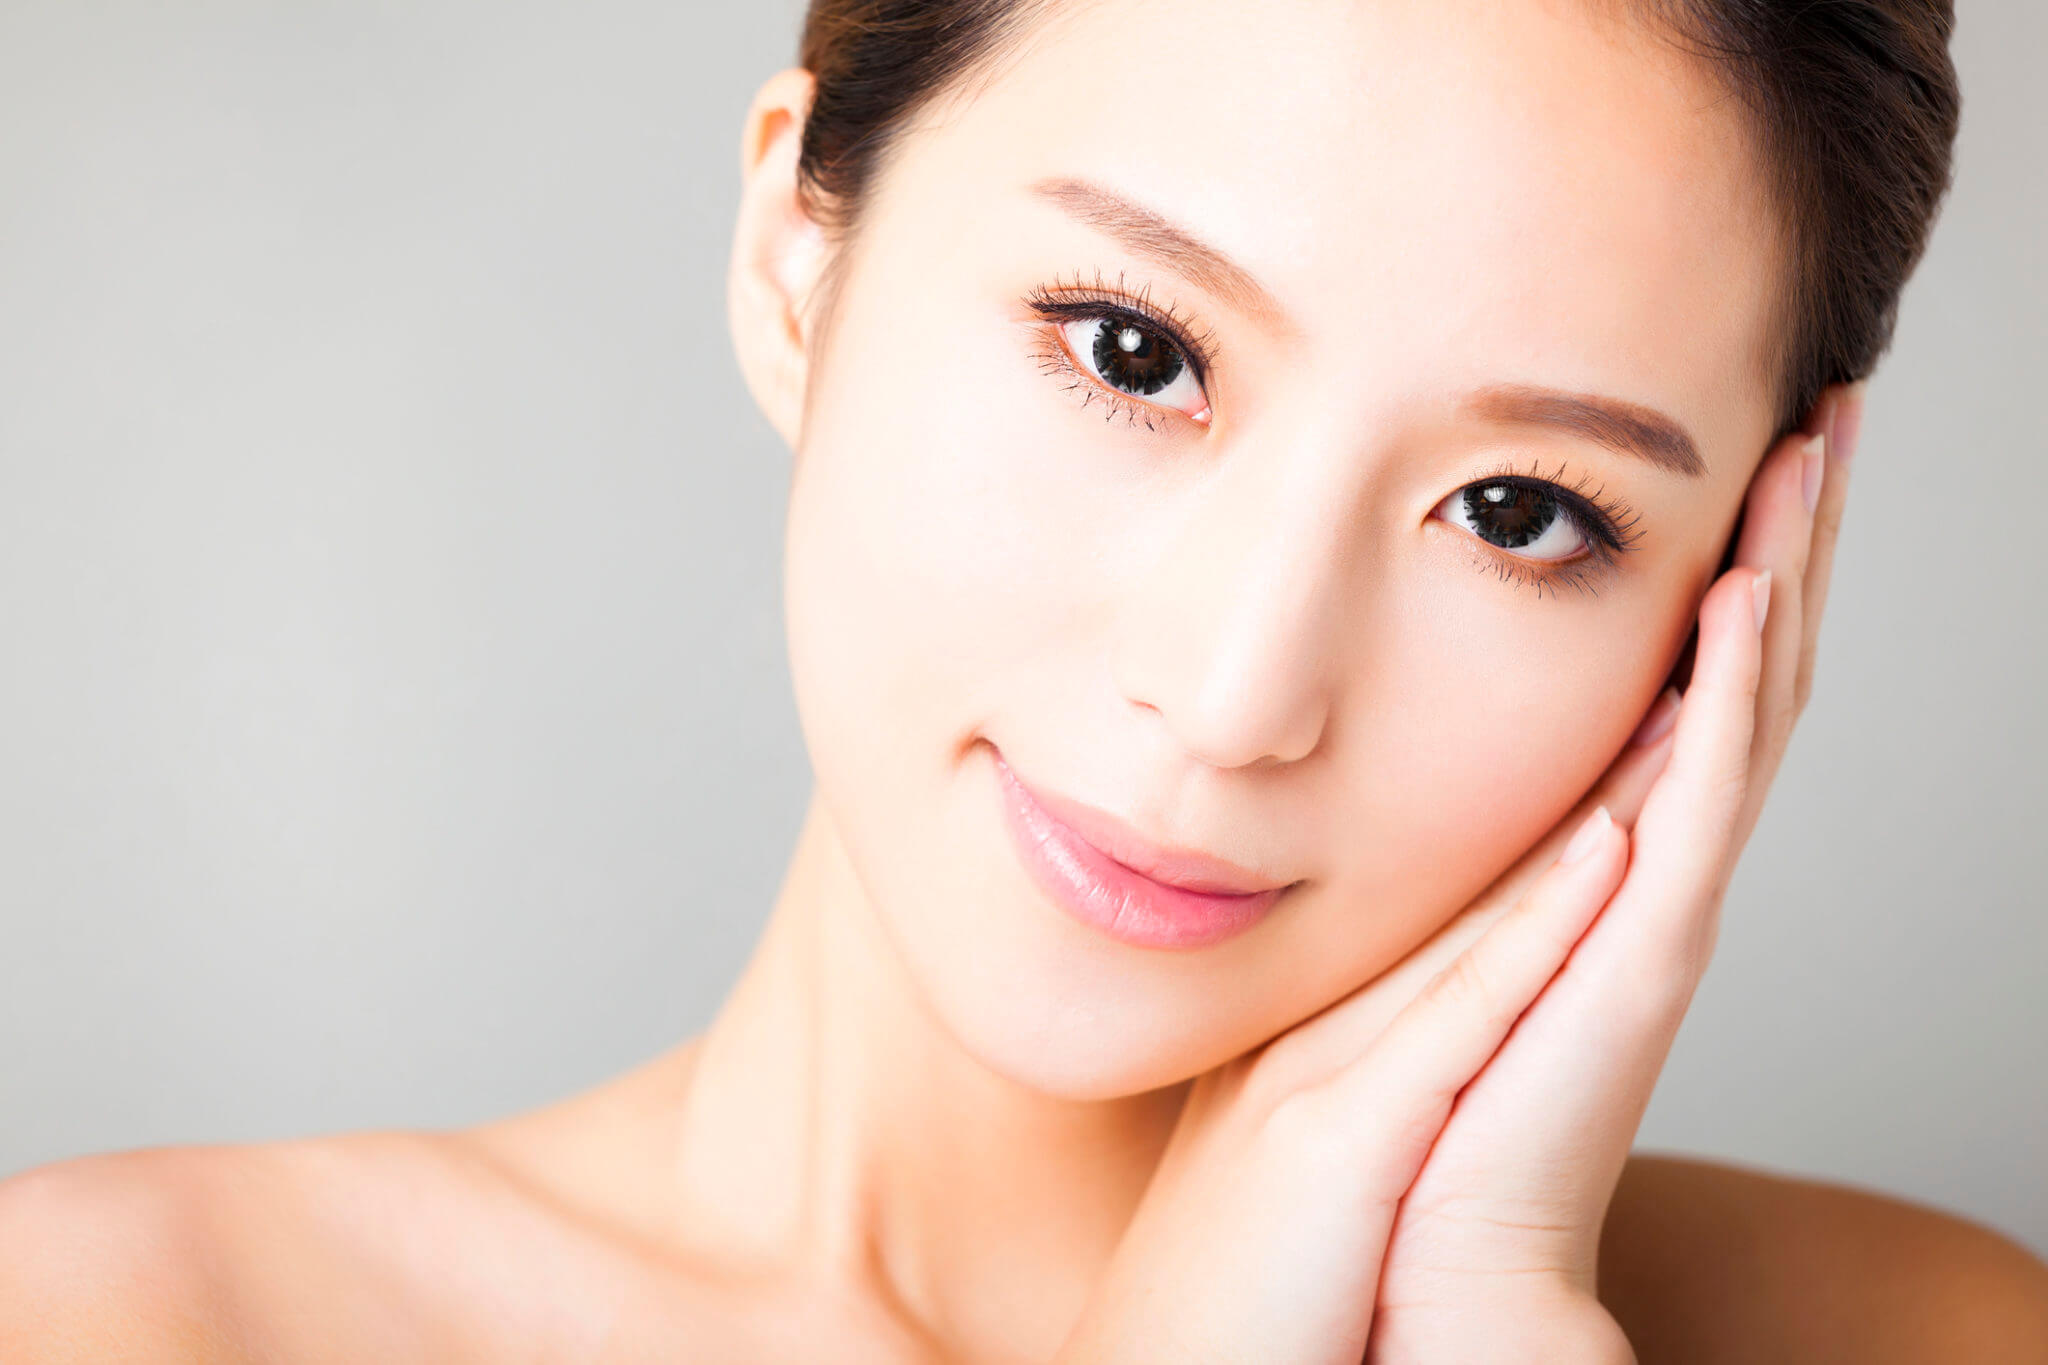 Acne Scar Removal in Singapore | Air Jet